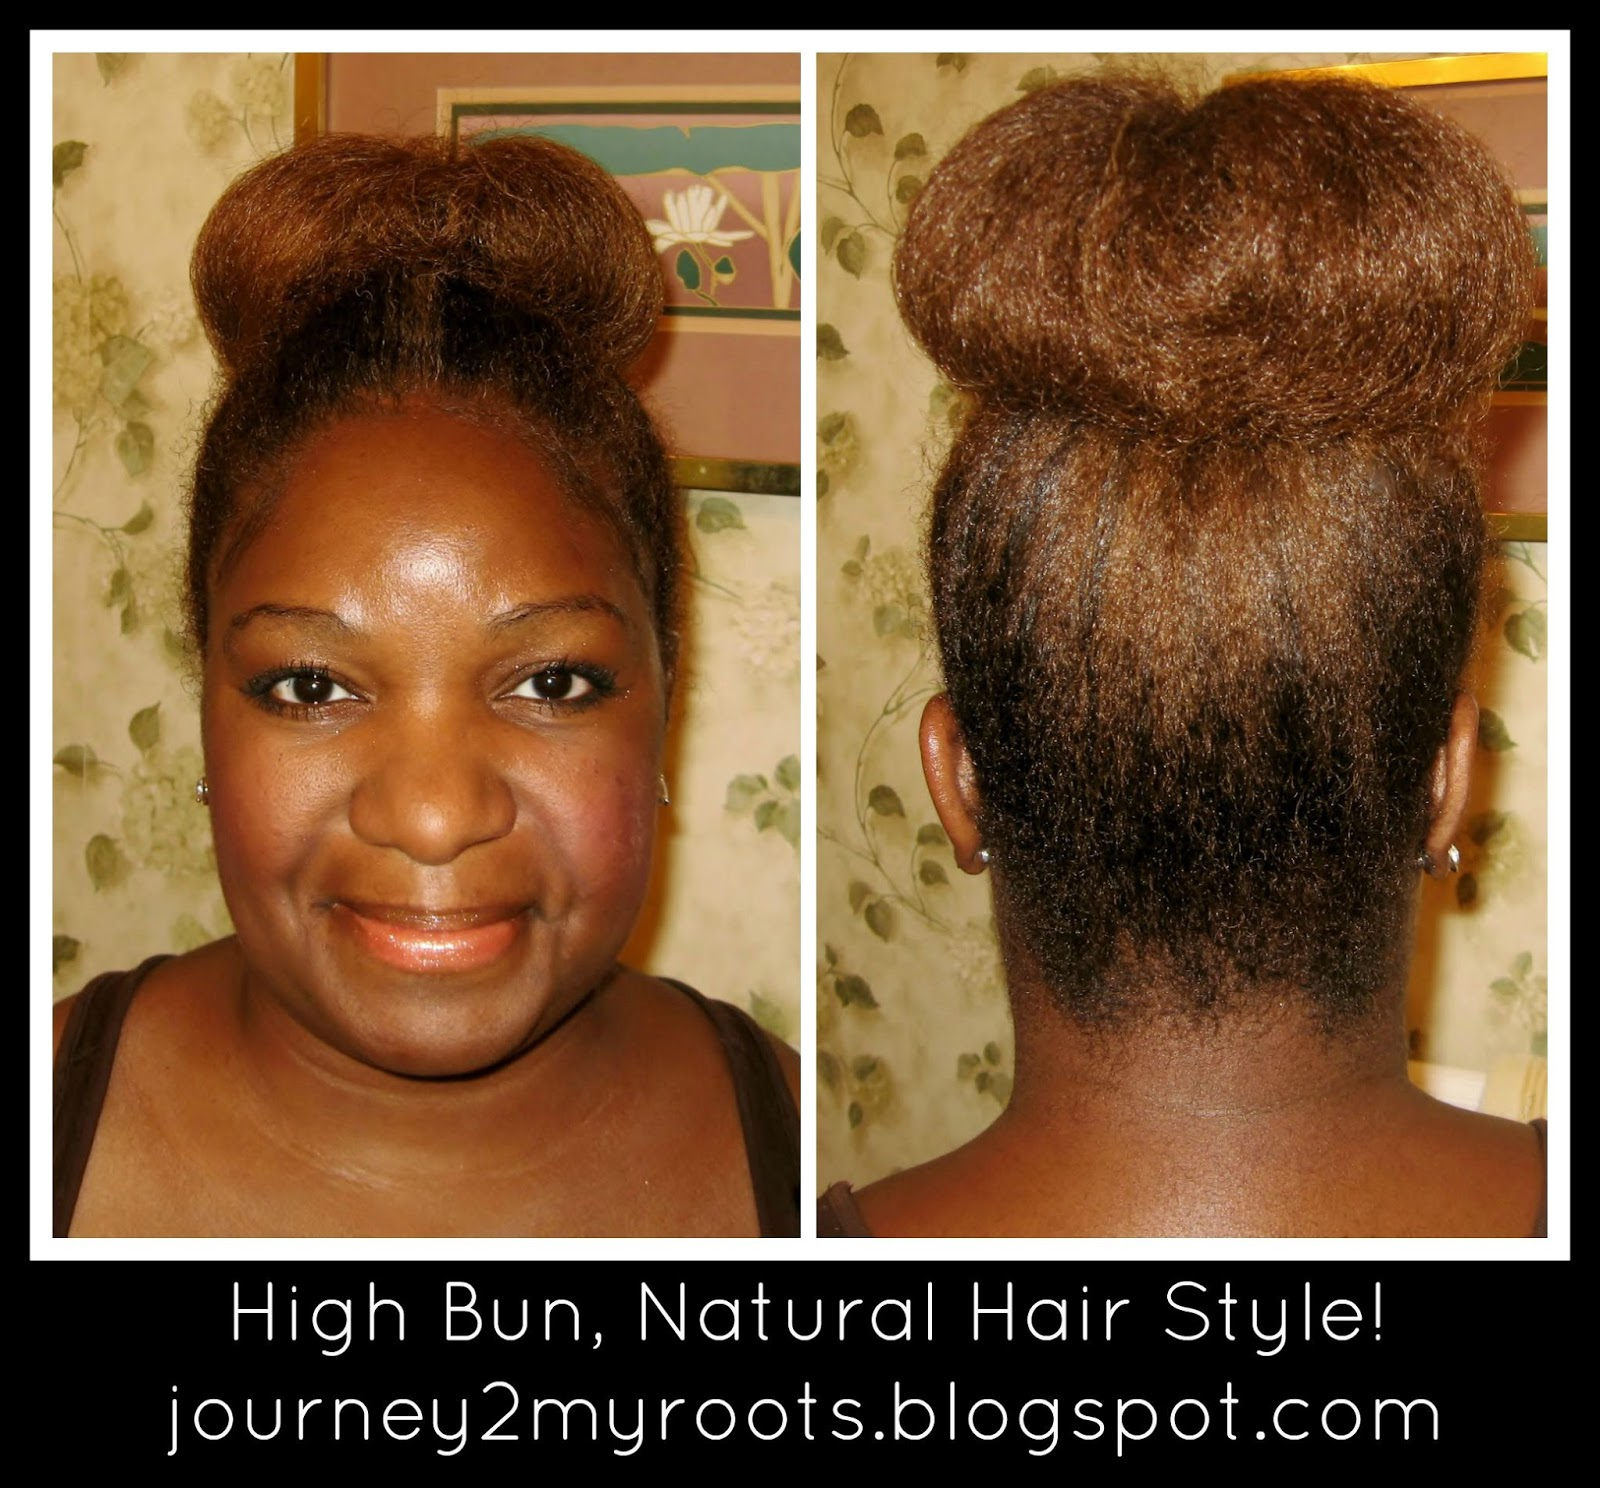 Journey To My Roots A High Bun Natural Hair Style